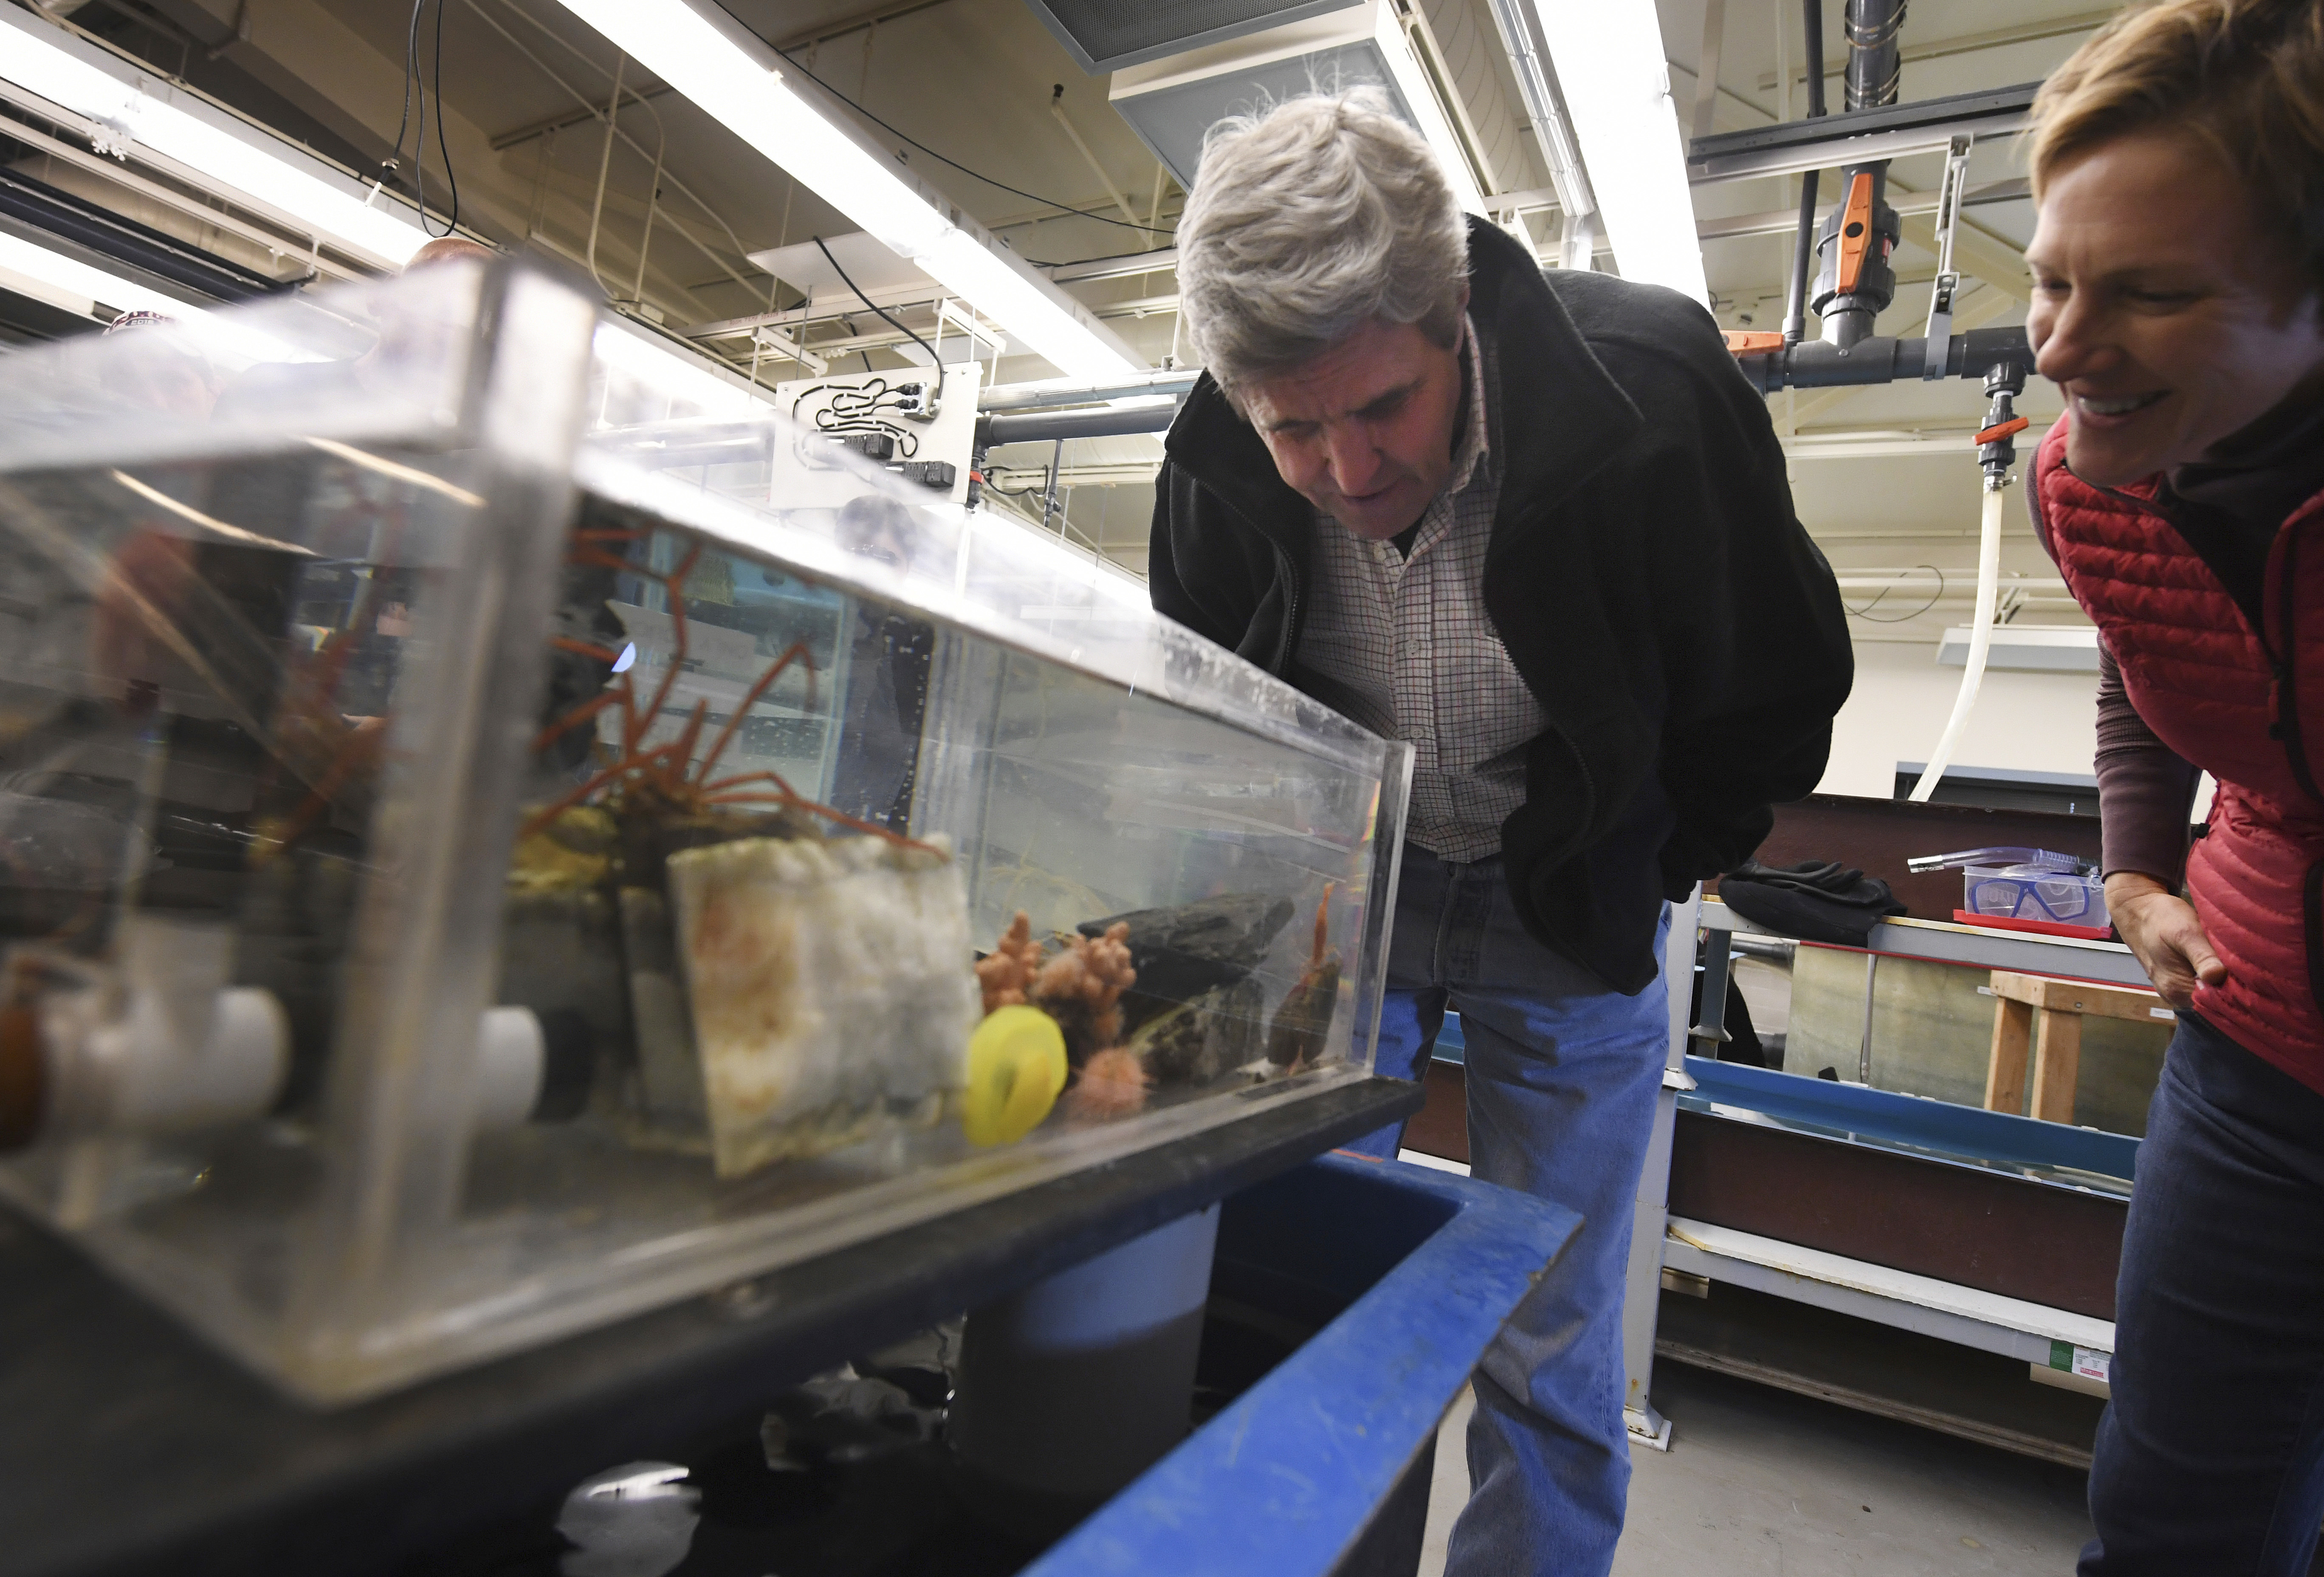 U.S. Secretary of State John Kerry  inspects marine life at the Crary Science Center in McMurdo Station in Antarctica, Nov. 12, 2016.